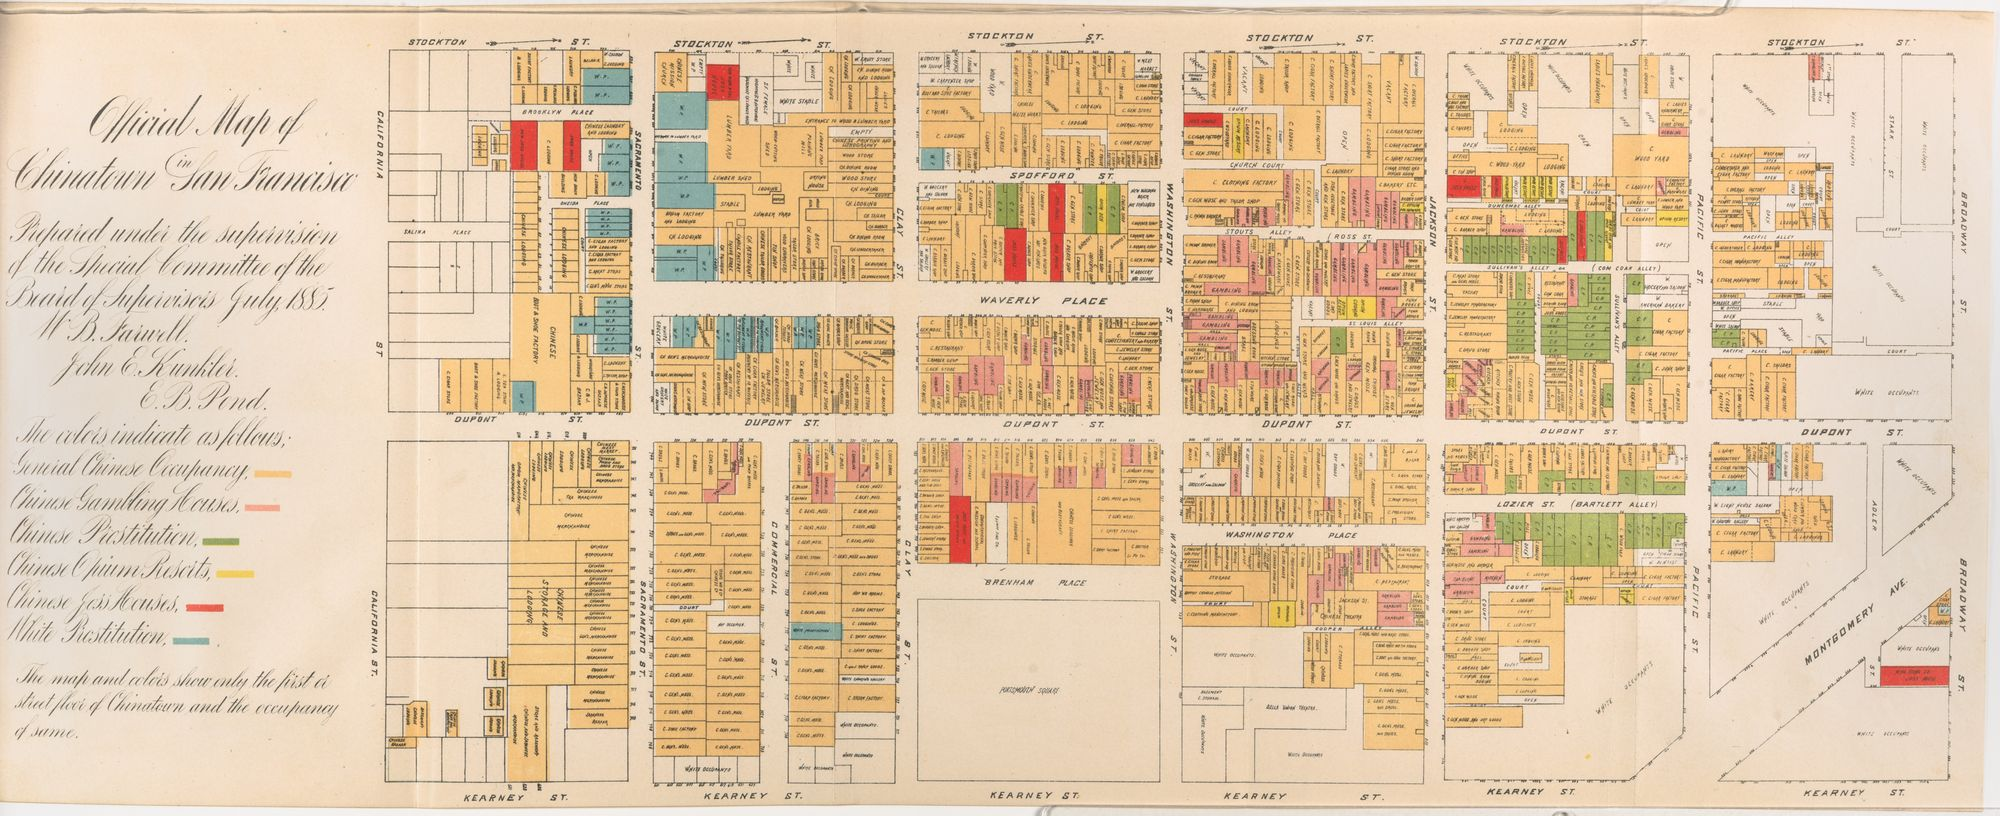 An official map of Chinatown from 1885 shows the color coded areas of prostitution and opium use.